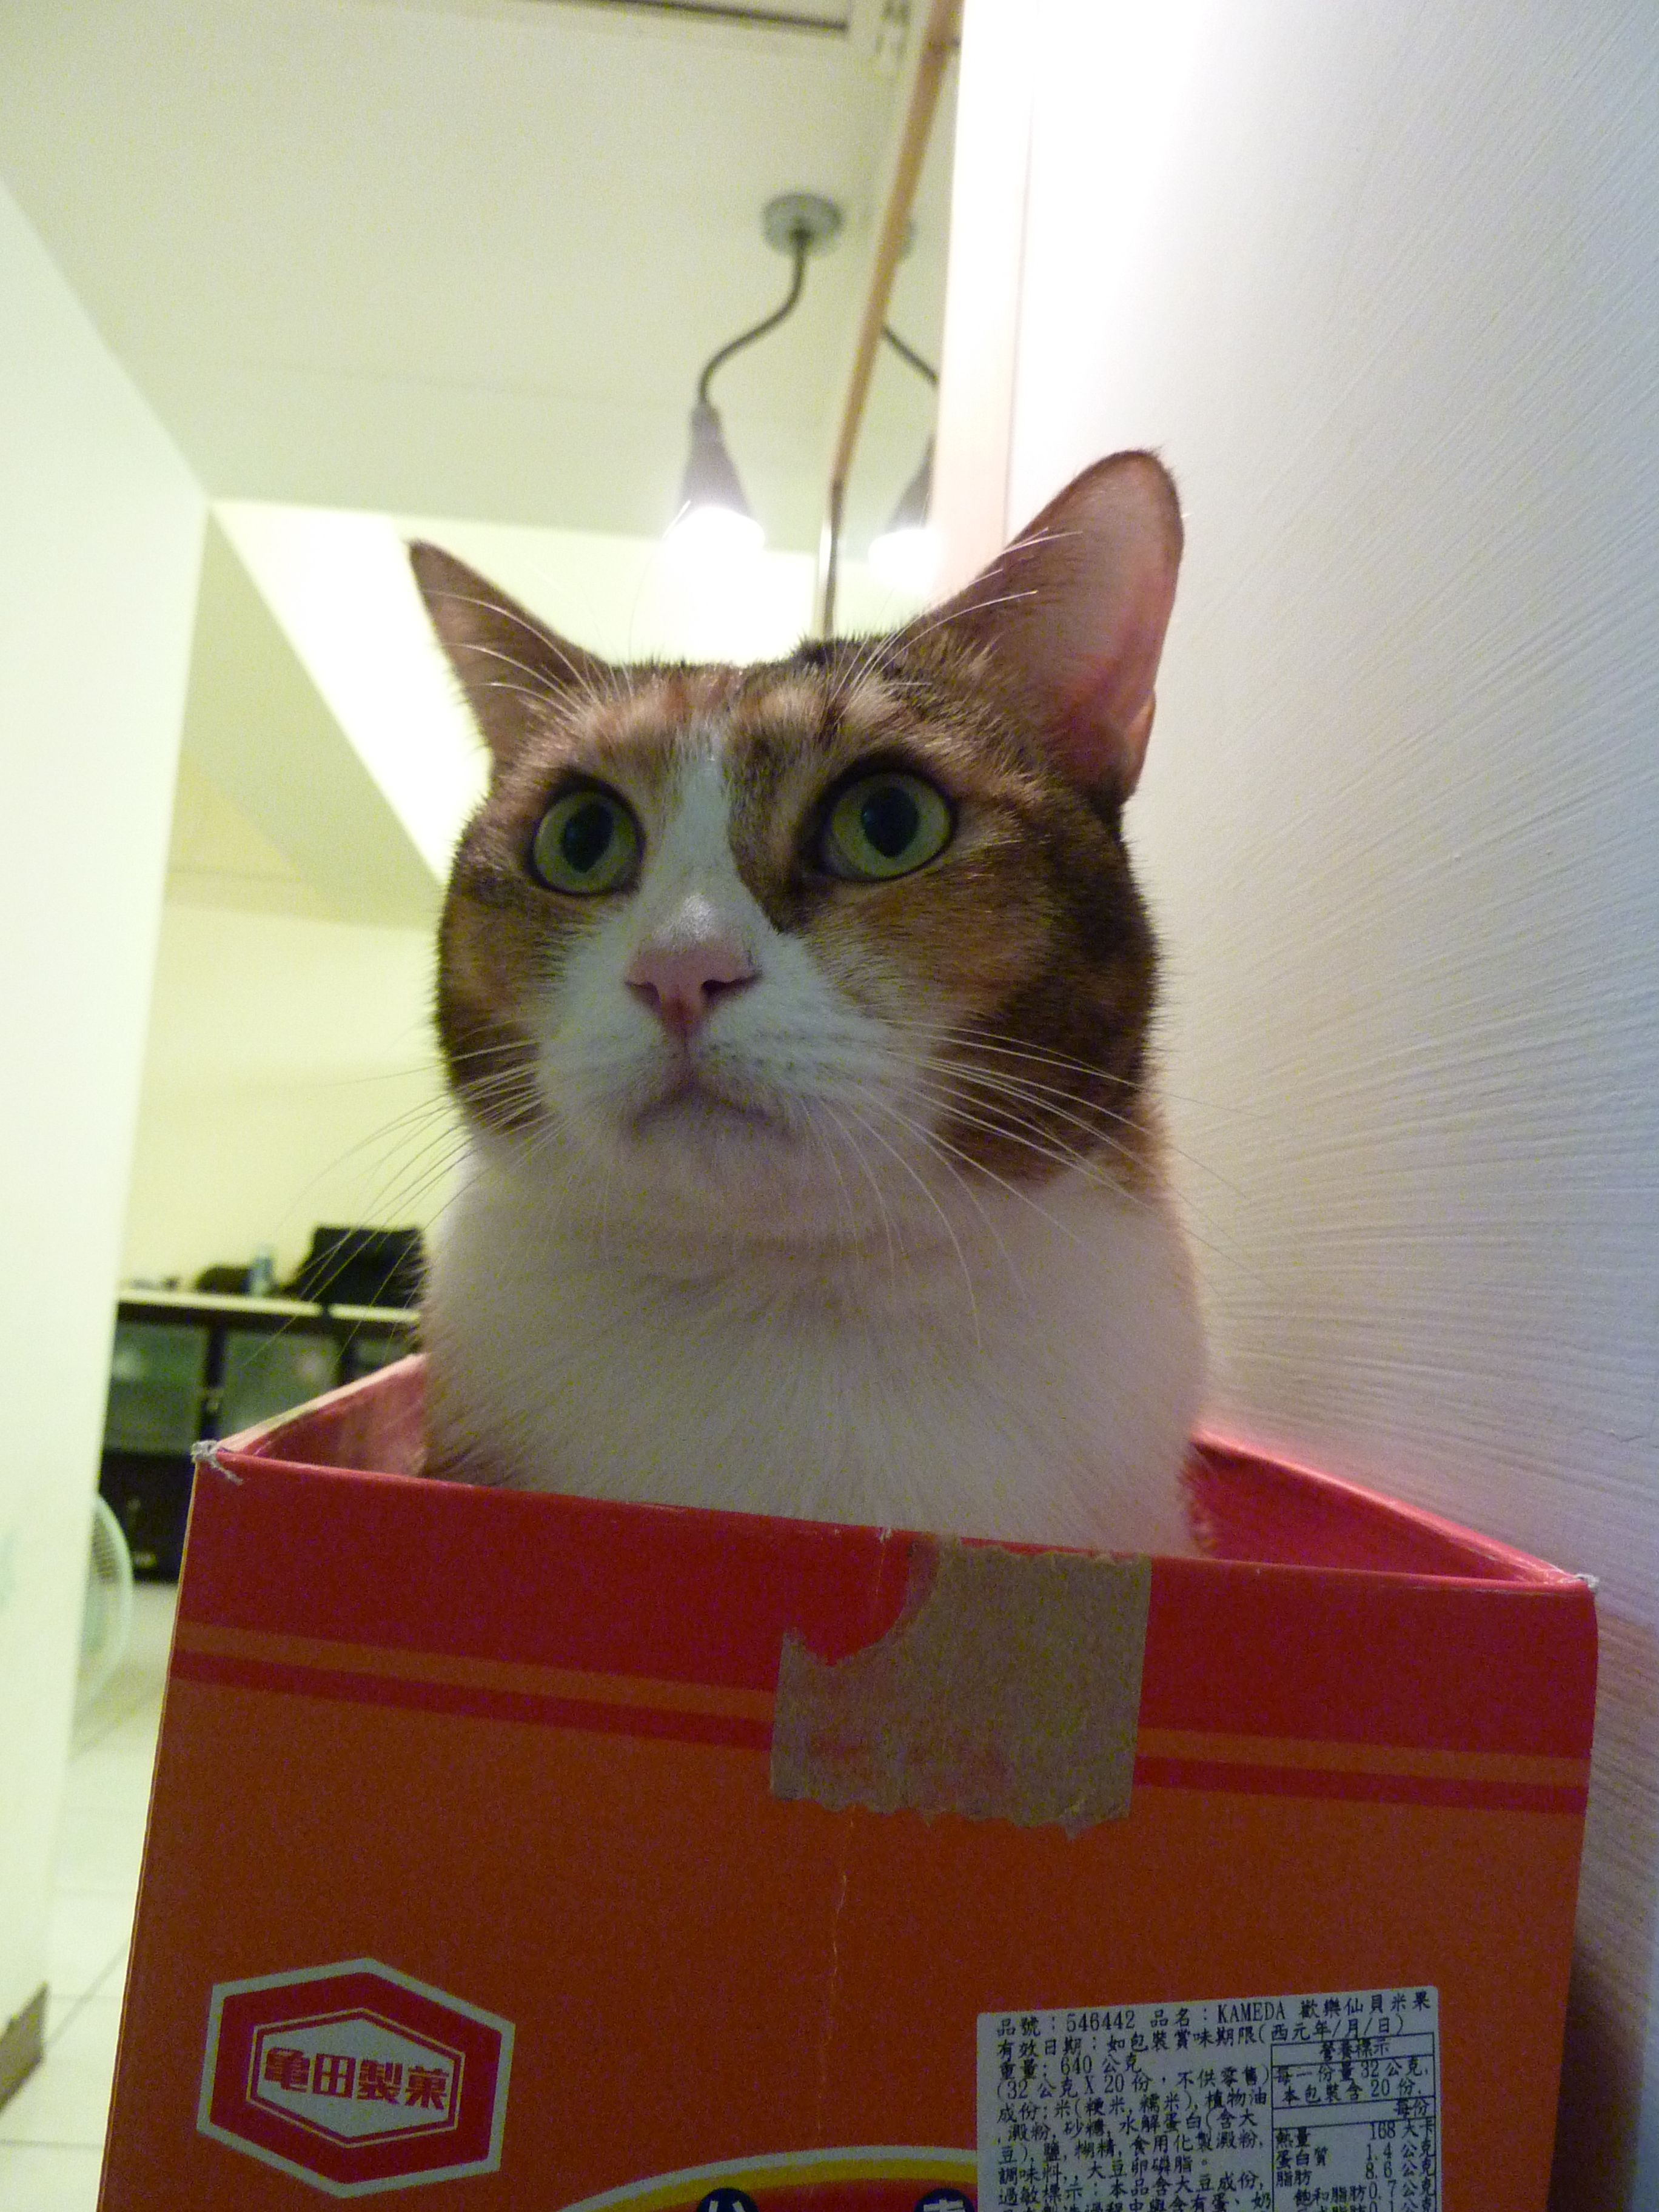 Exactly why cats love boxes so much